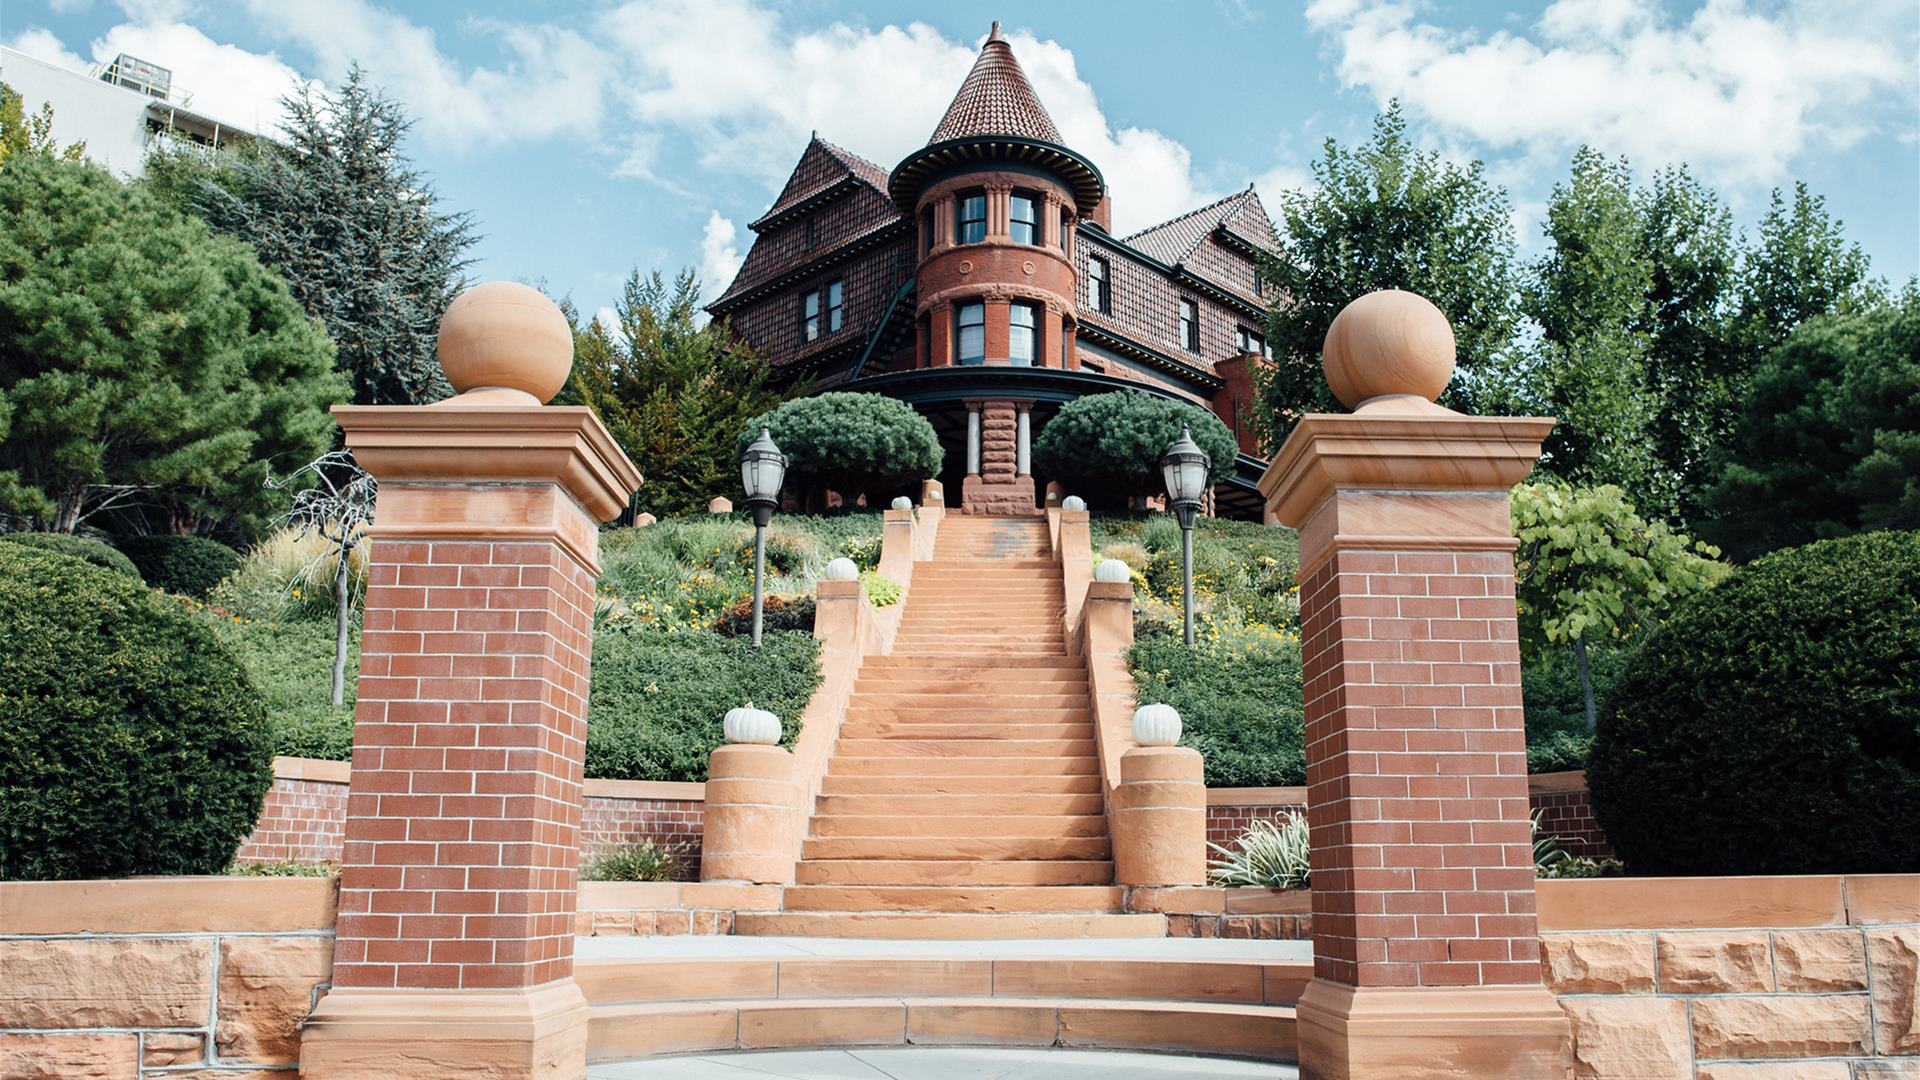 The stairs leading up to the Alfred McCune Home